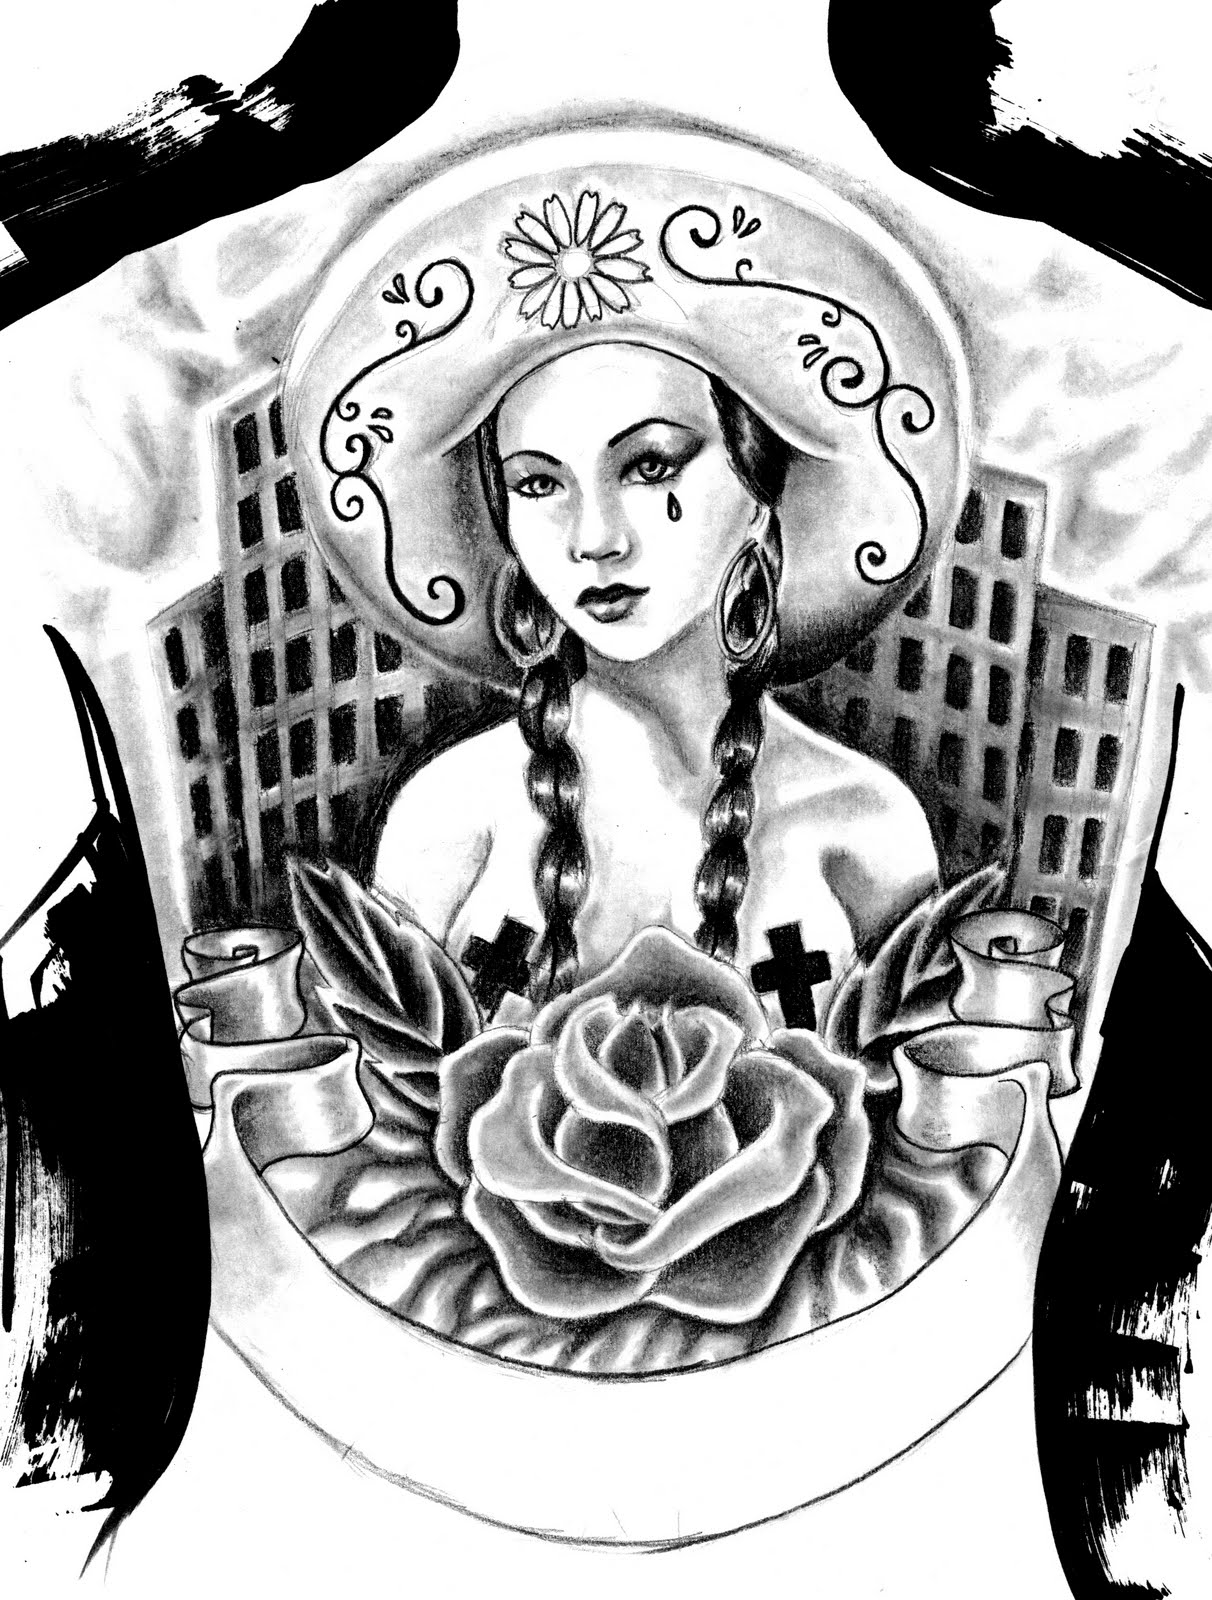 Mexican gangster back piece - Tattoo Design